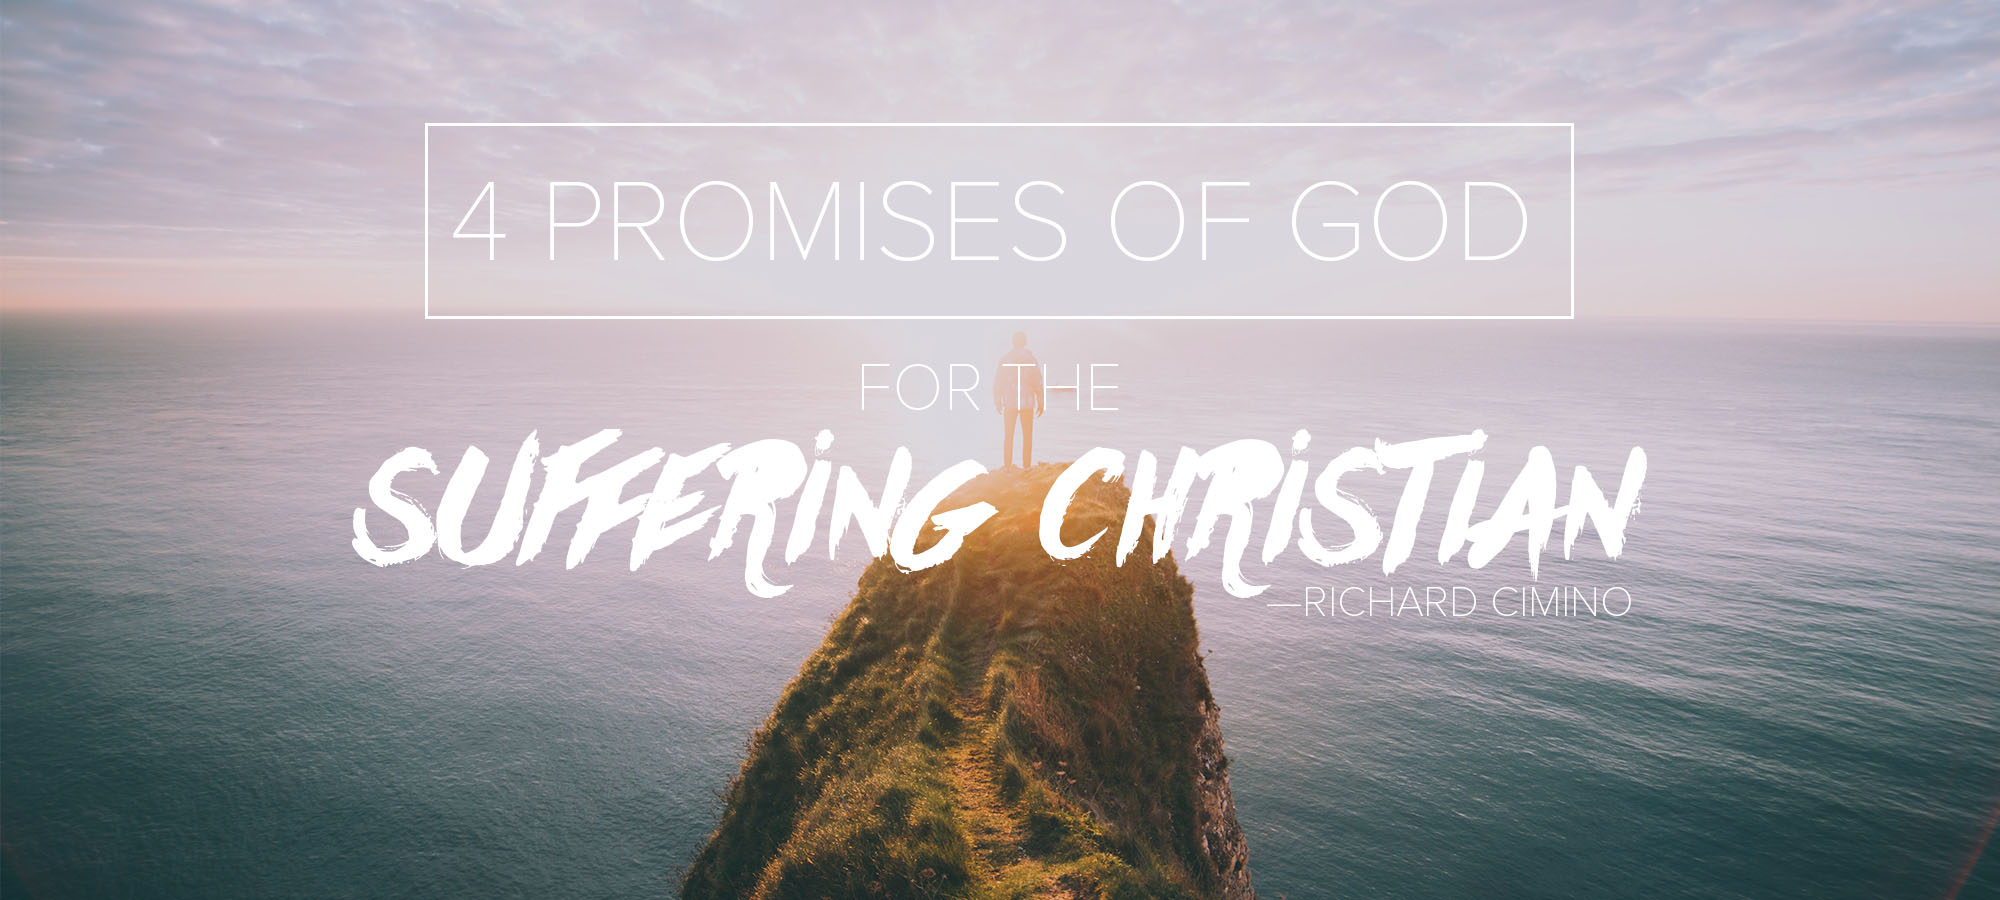 Four Promises of God for the Suffering Christian